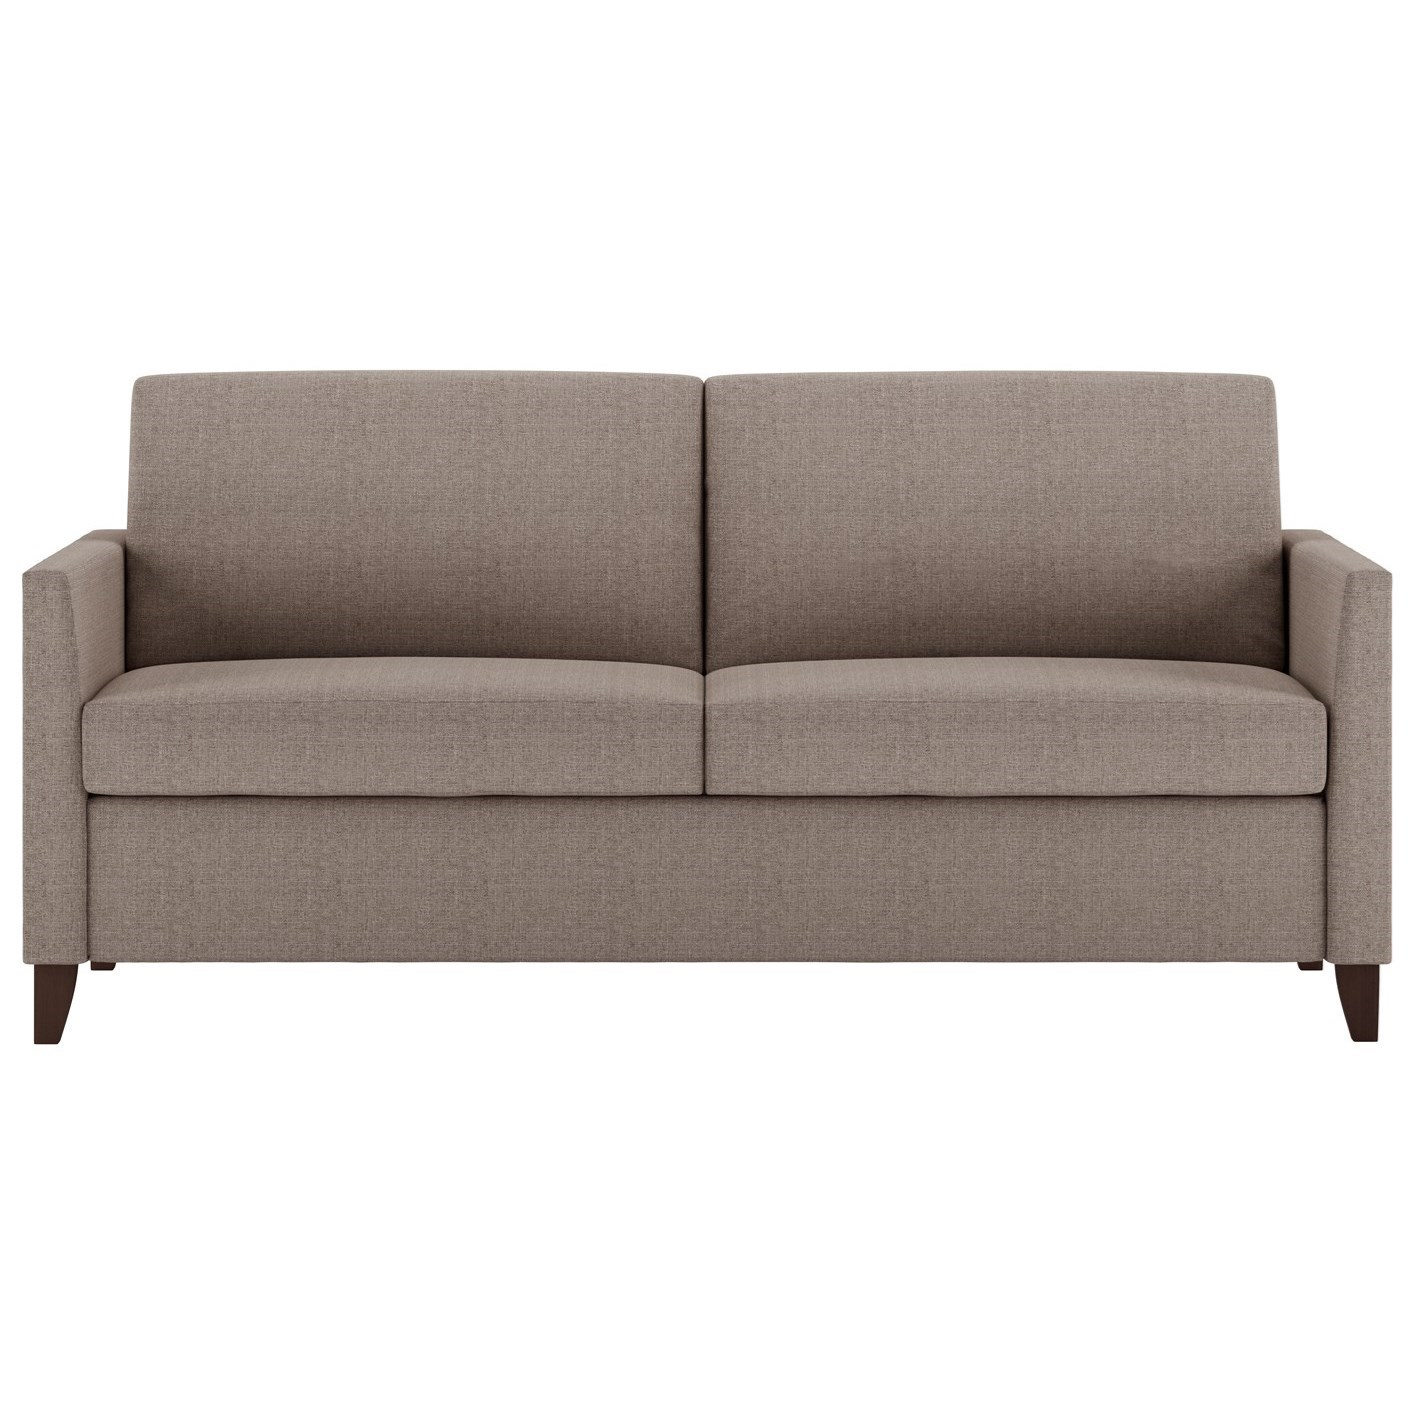 Harris Queen Size Sleeper Sofa by American Leather at Saugerties Furniture Mart